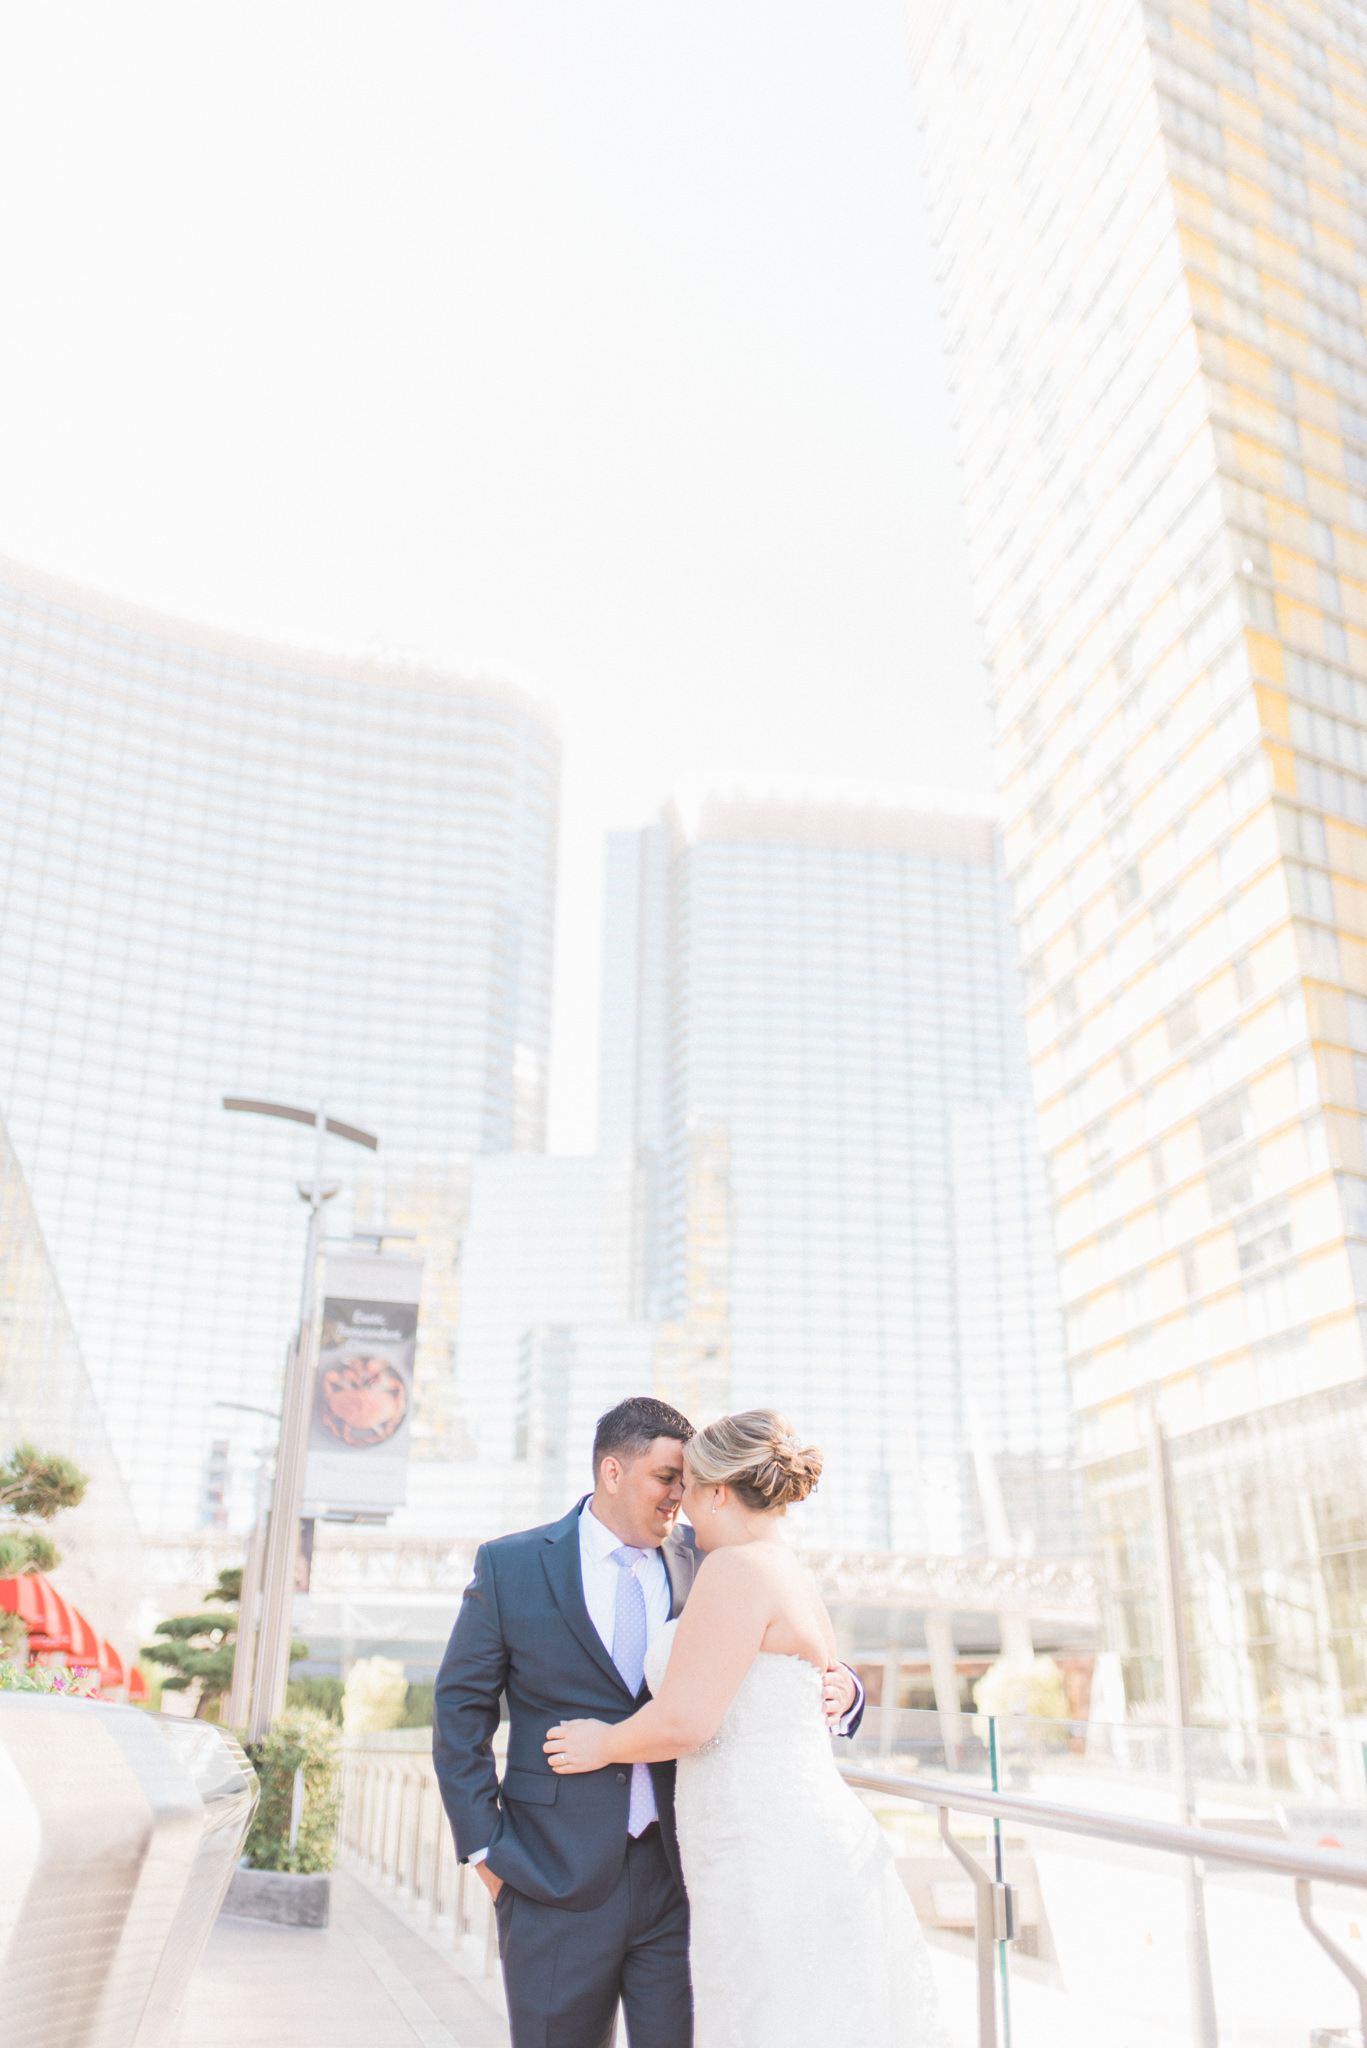 #weddingplannerlasvegas,#lasvegasweddingcoordinators,#weddingcoordinatorslasvegas,#weddingcoordinatorlasvegas,#lasvegasweddingplanner #desirableeventsbydesi #Tropicanawedding #wedding, #love, #lovewins, #samesexwedding, #gaywedding, #tropicana, #lasvegaswedding, #weddinglasvegas, #weddingplannerslasvegas, #lasvegasweddingplanners, #worldmarketcenter, #susieandwill, #elegantwedding, #myloandshino, #lasvegas, #weddingslv, #lvweddingplanners